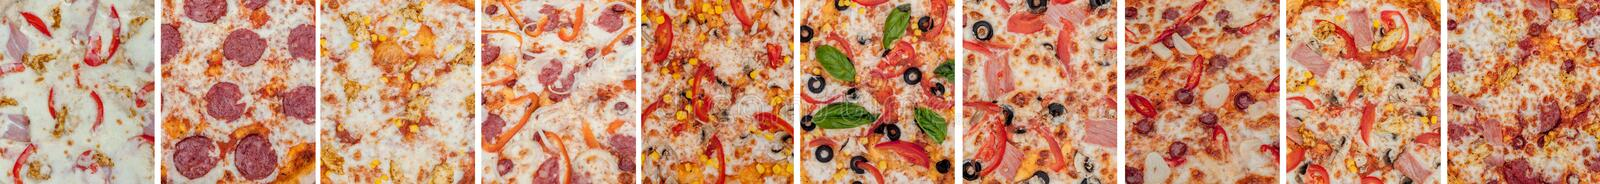 Set of different kind of pizza isolated on white background royalty free stock photo